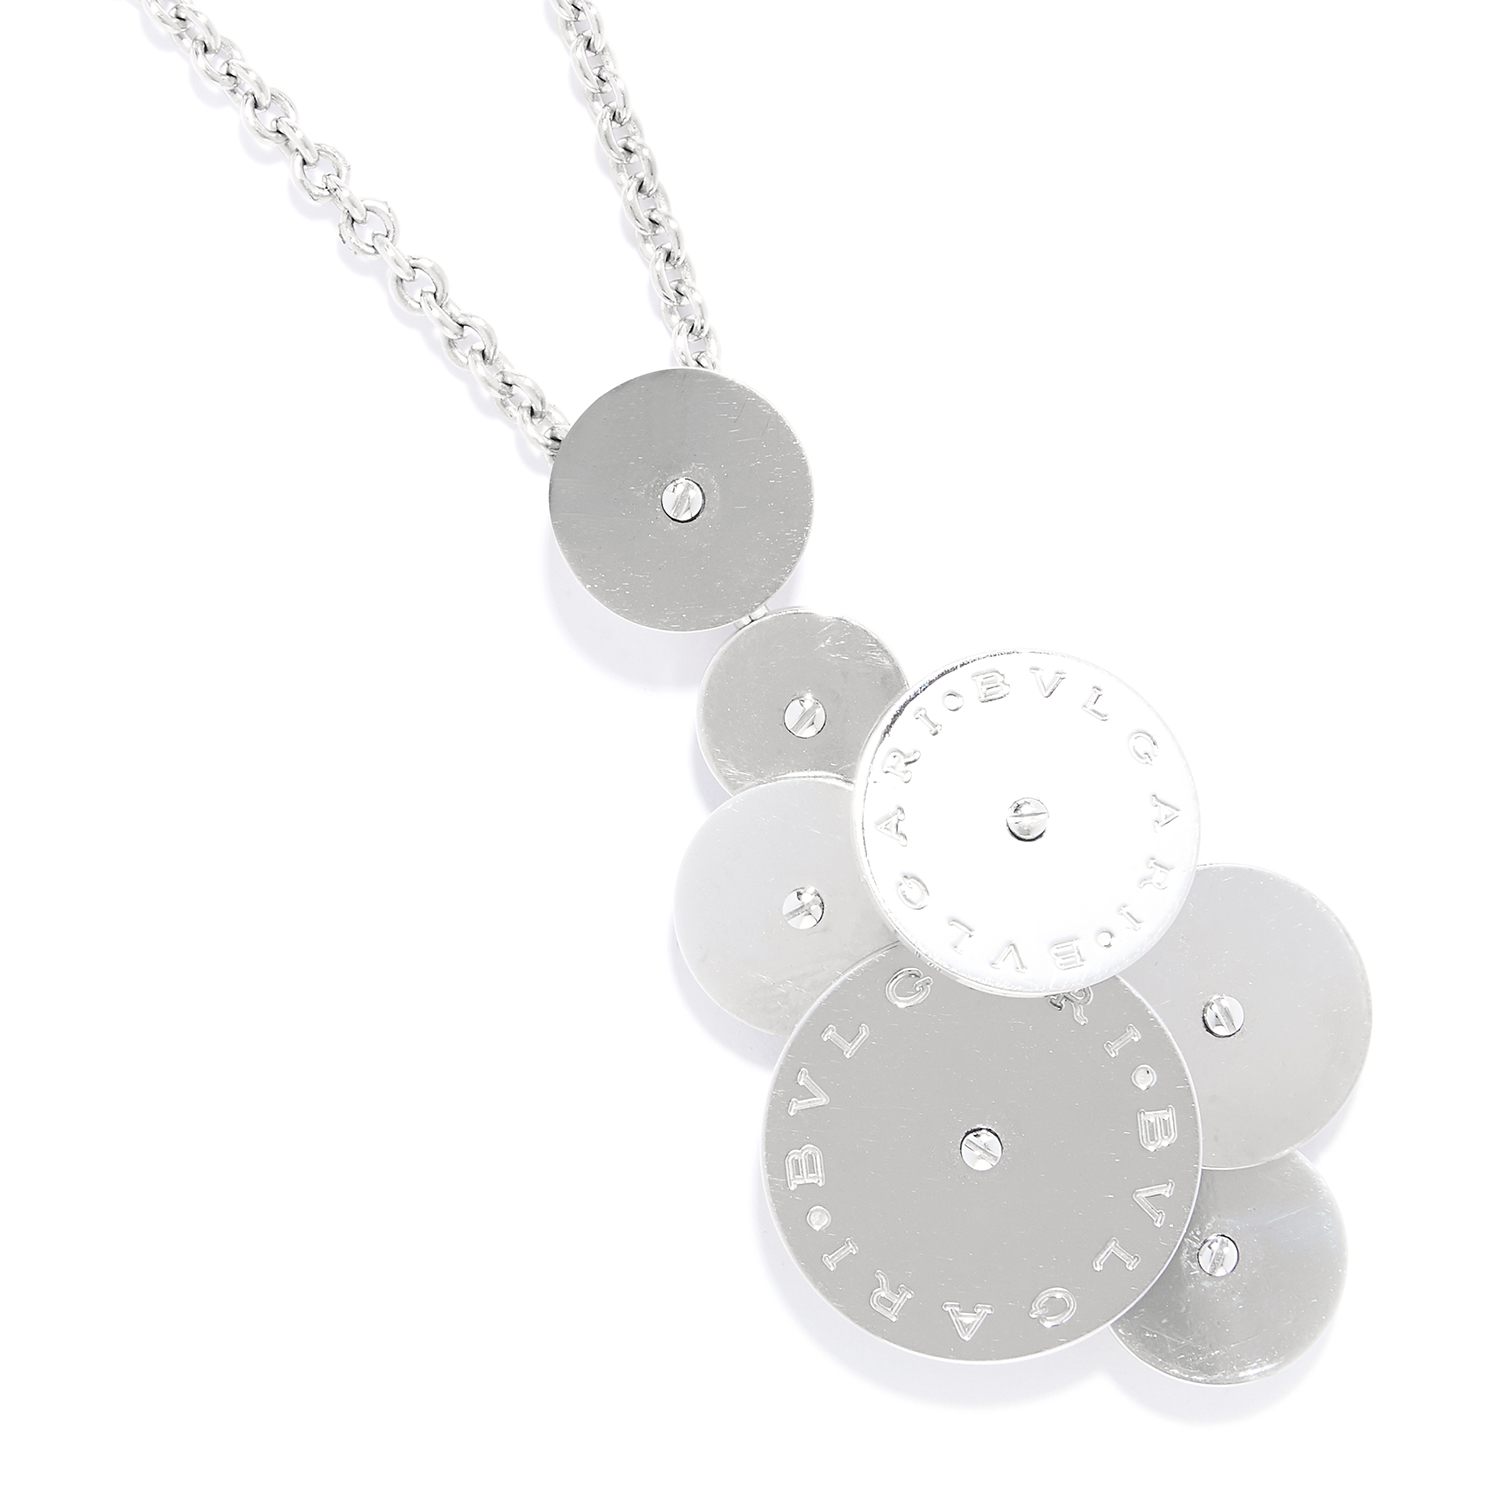 CICLADI SPINNING DISC PENDANT NECKLACE AND CHAIN, BULGARI in 18ct yellow gold, formed of an array of